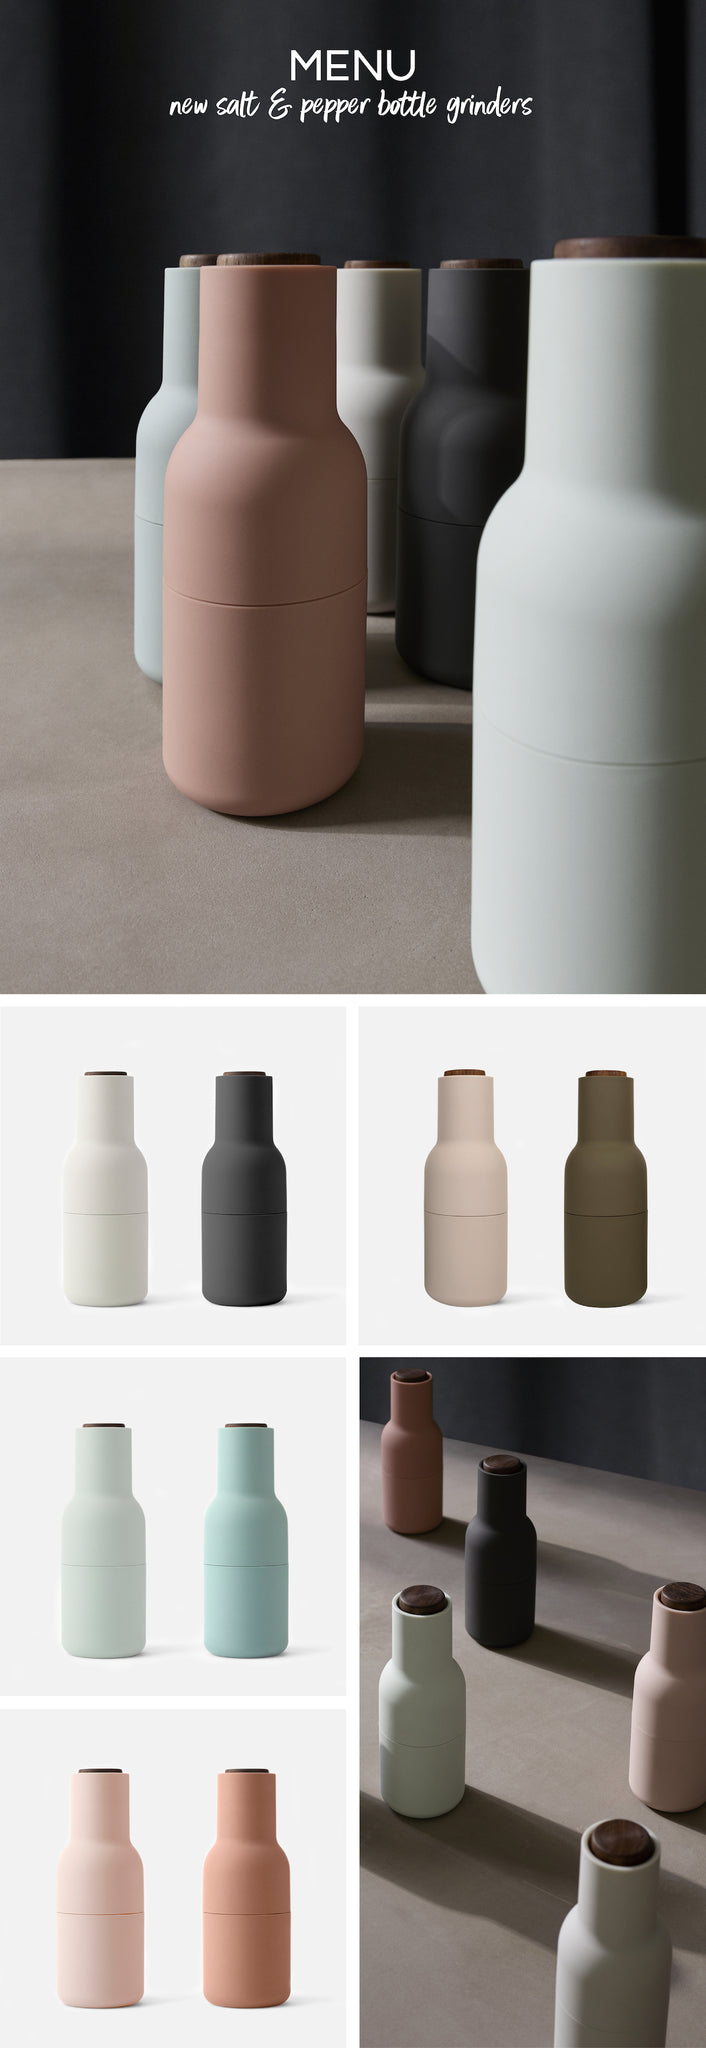 Moody Hues - Menu - Salt + Pepper Bottle Grinders